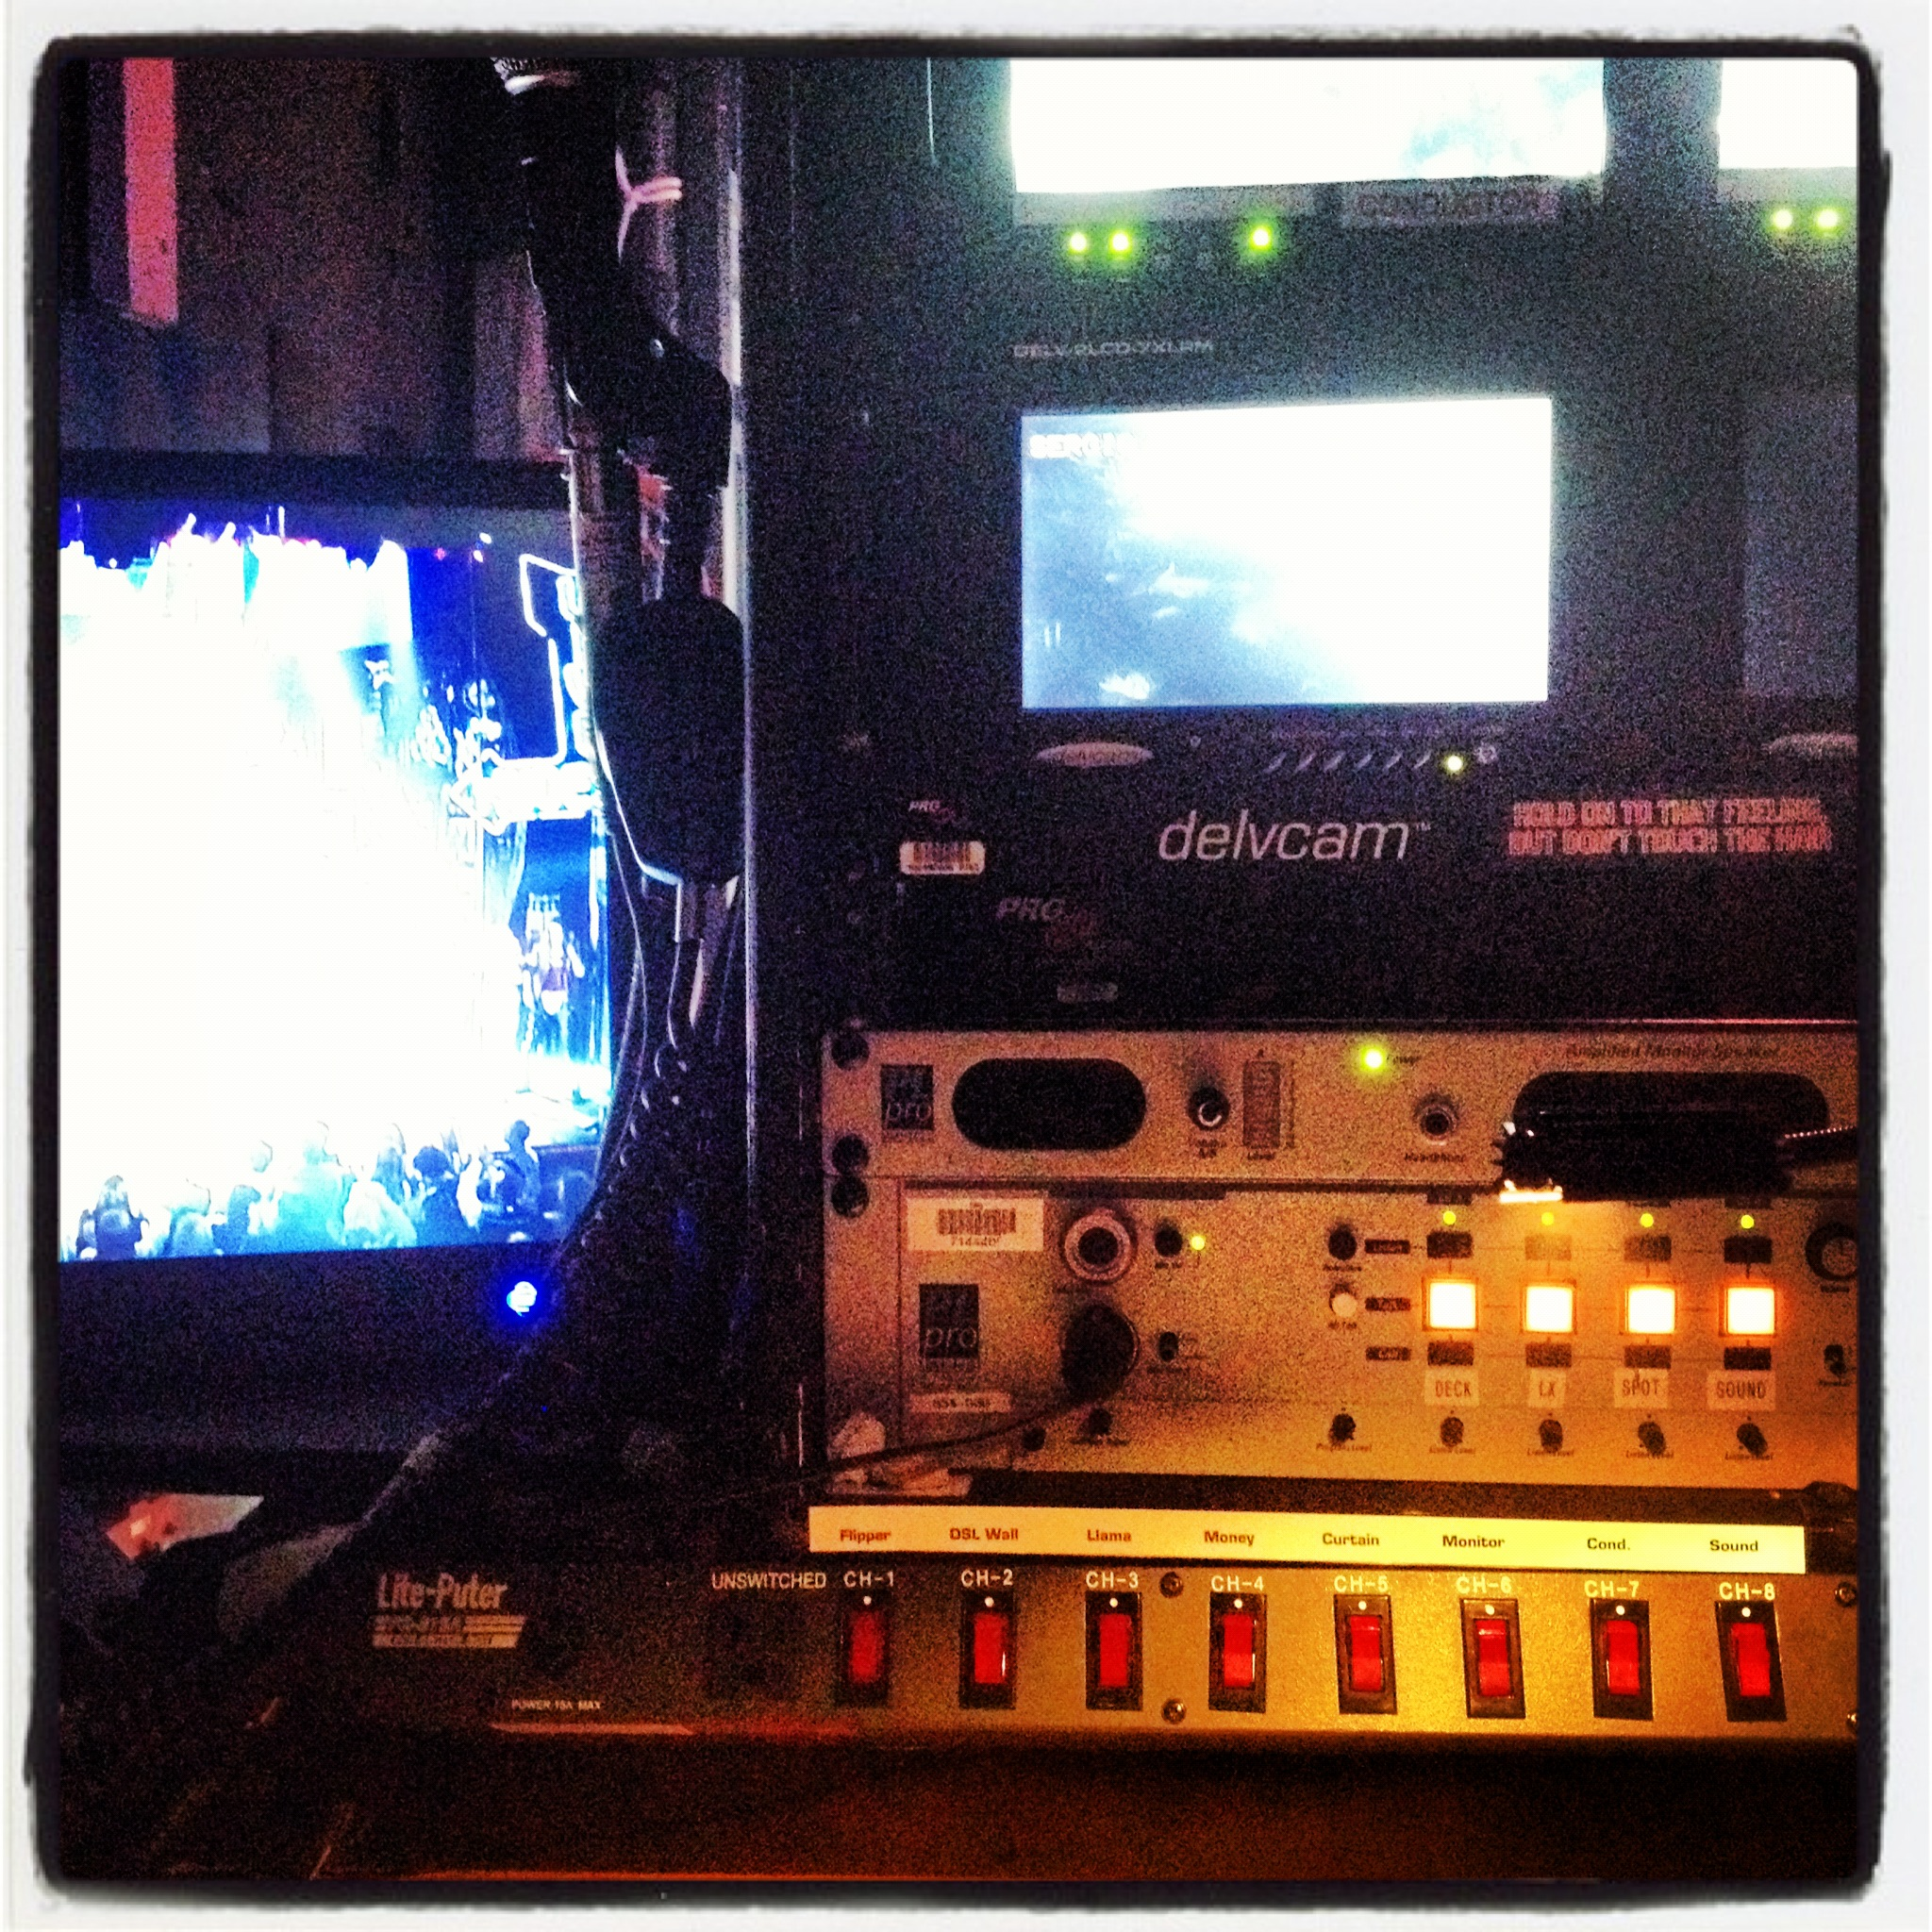 The stage manager's call desk